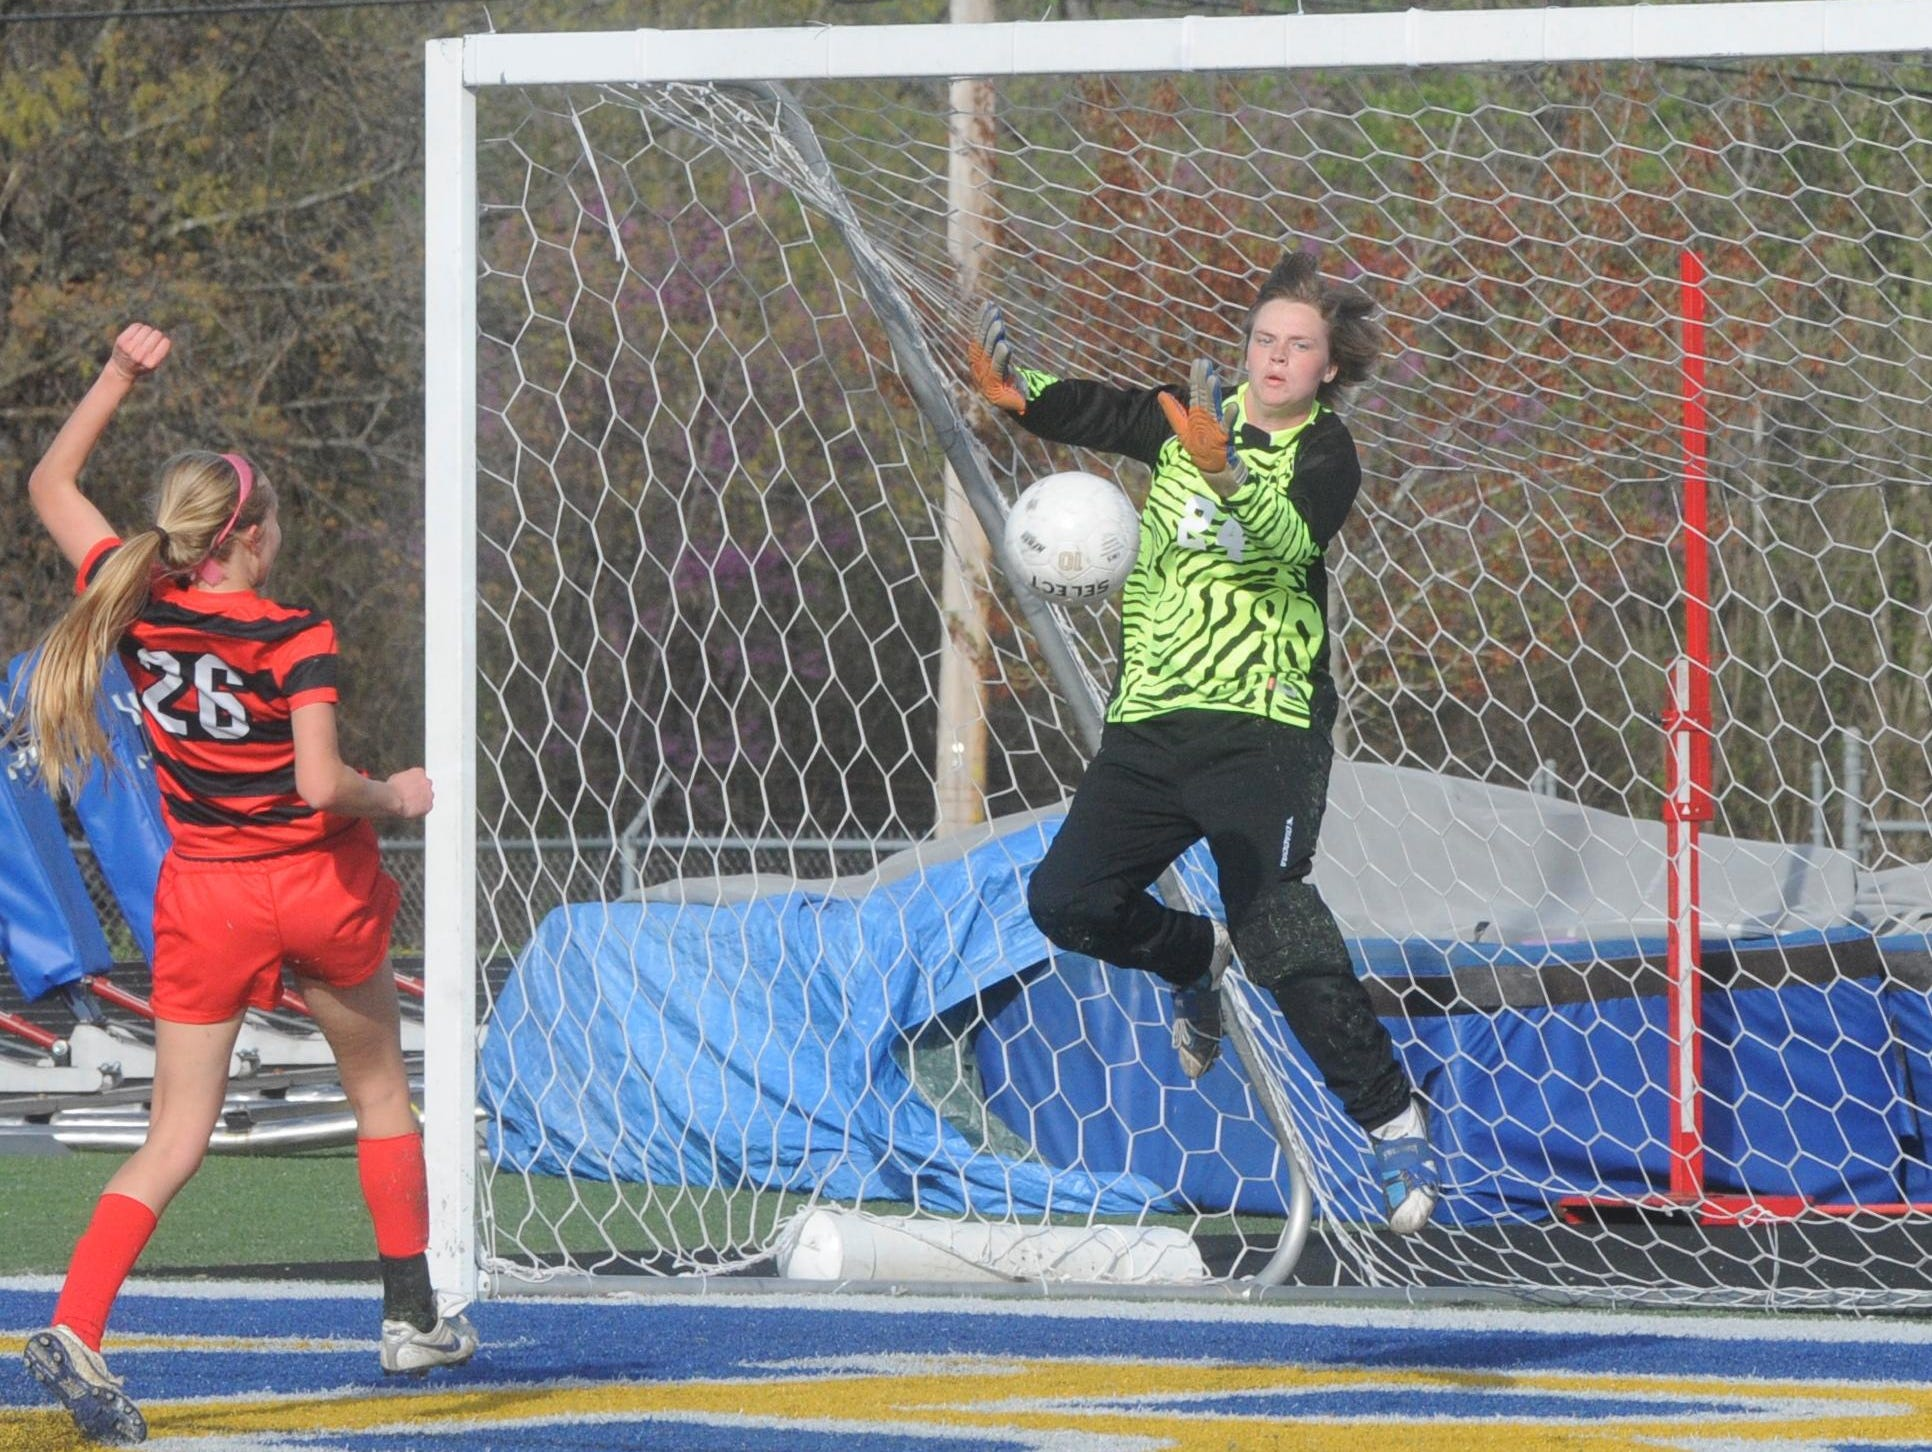 Mountain Home's Kira Bailey makes a save during a match against Cabot last season. Bailey played goalkeeper for the East squad in the Arkansas High School Coaches Association's all-star girls' soccer match on Wednesday night at Conway.